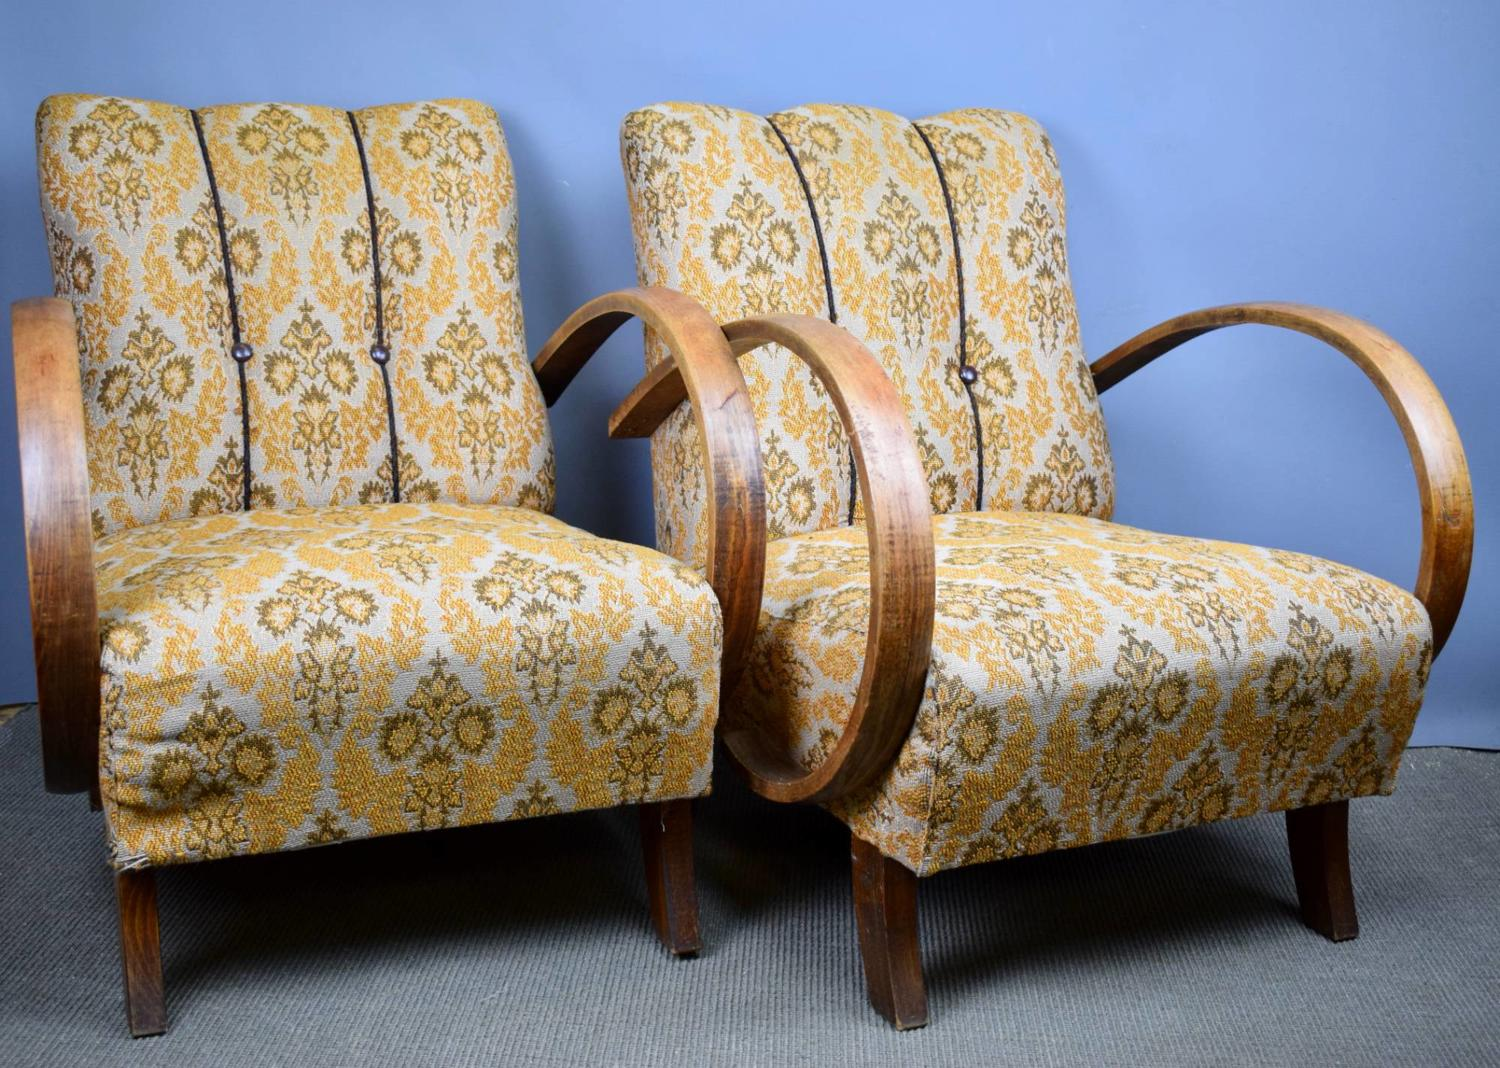 Pair of Lounge Chairs attributed to Jindrich Halabala for UP Závody Brno